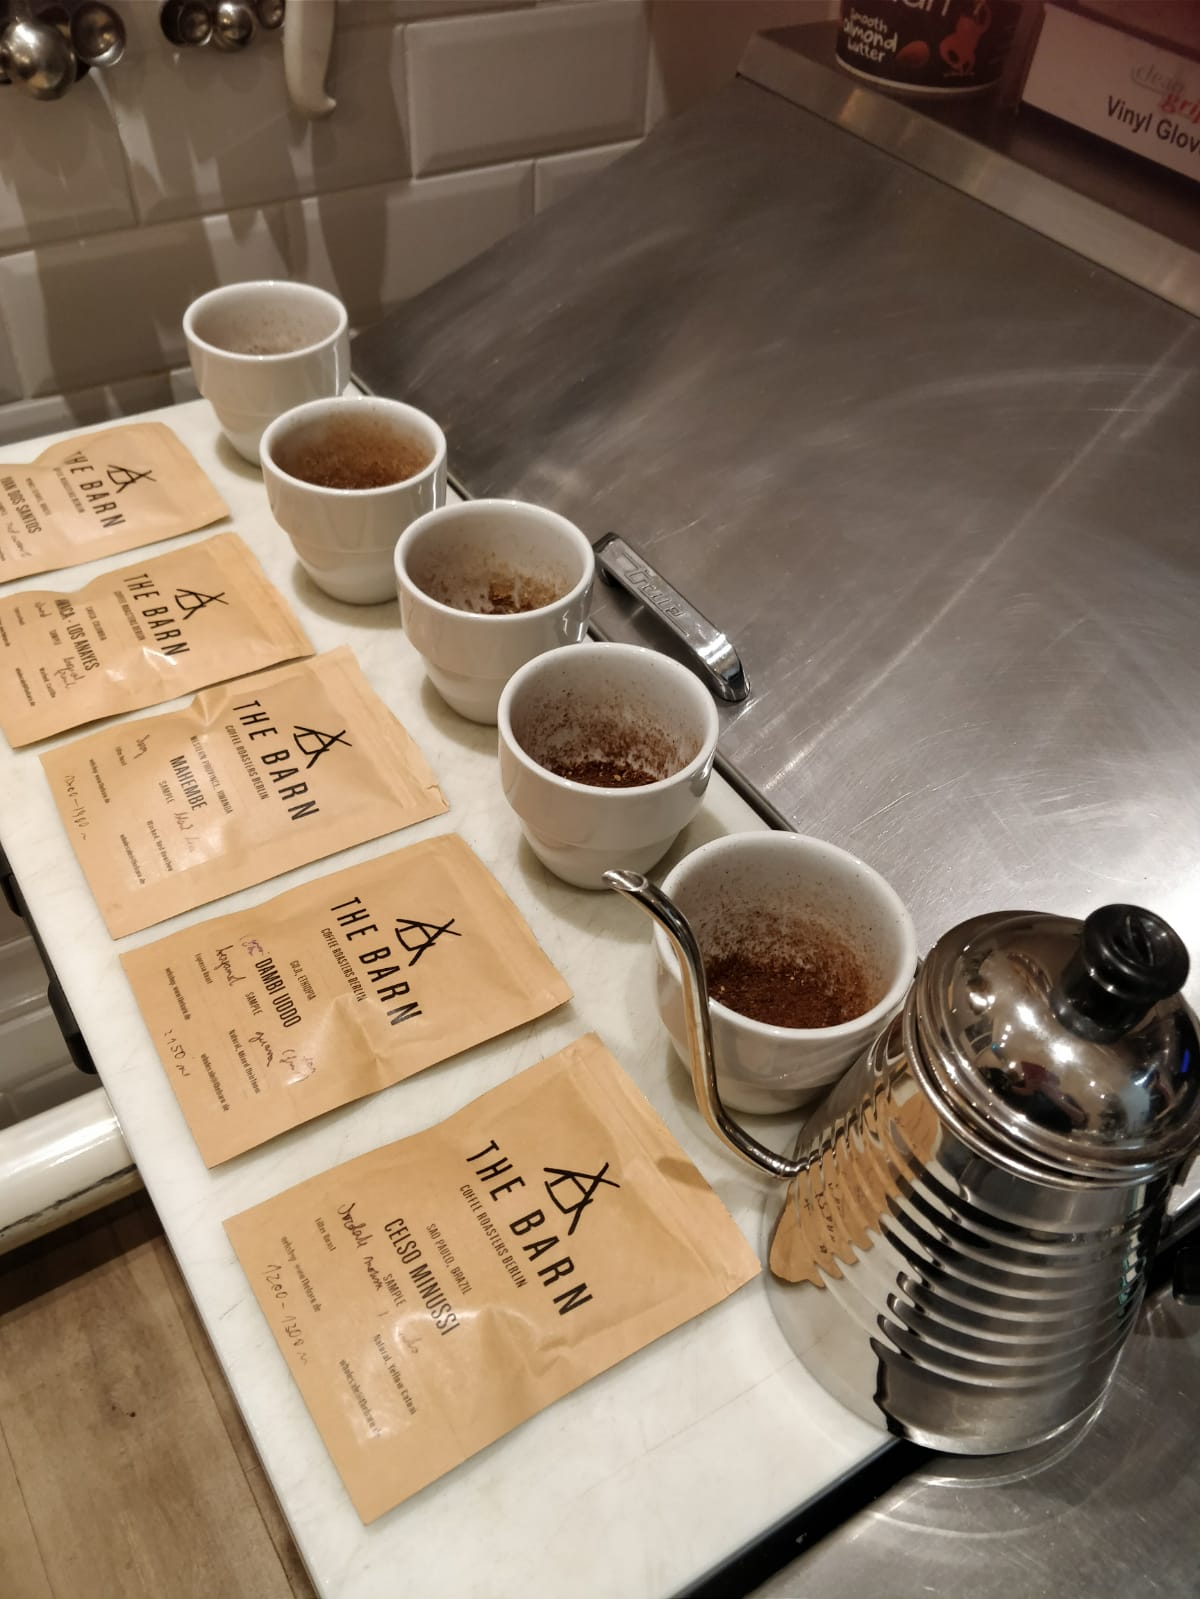 barn cupping jan 2019 pic 2.jpg